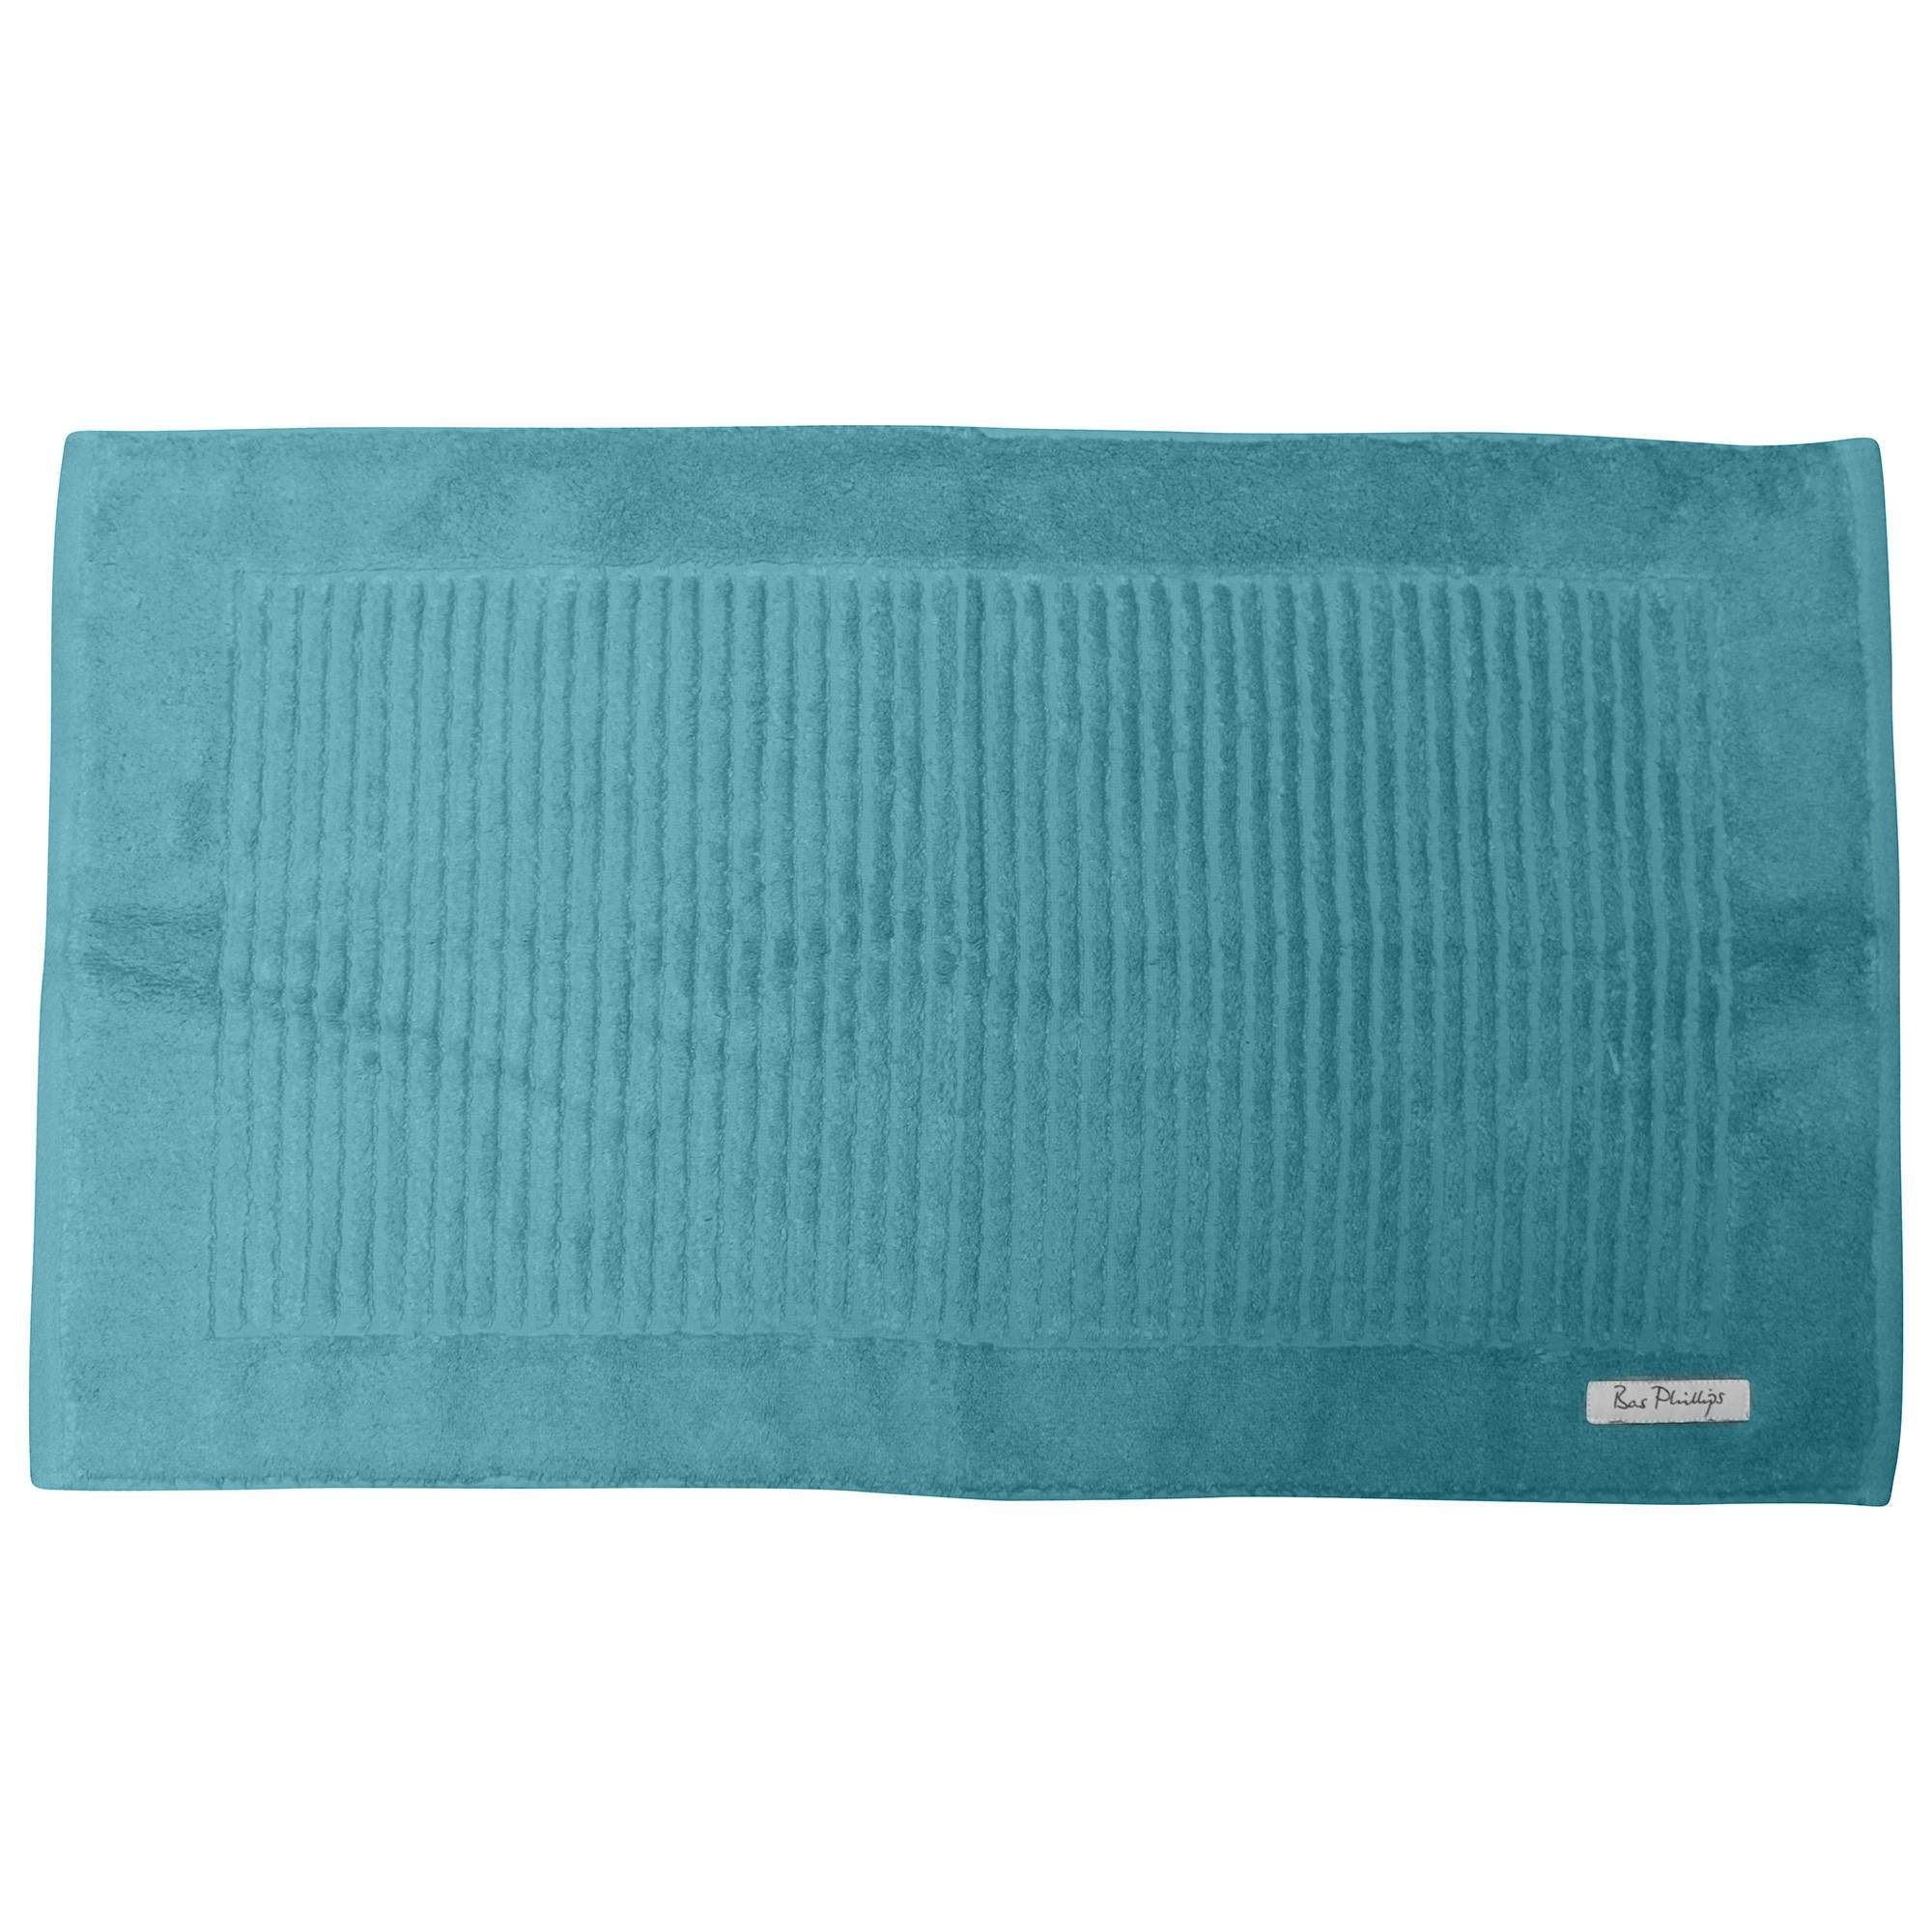 Bas Phillips Hayman Zero Twist Cotton Bath Mat, Ocean